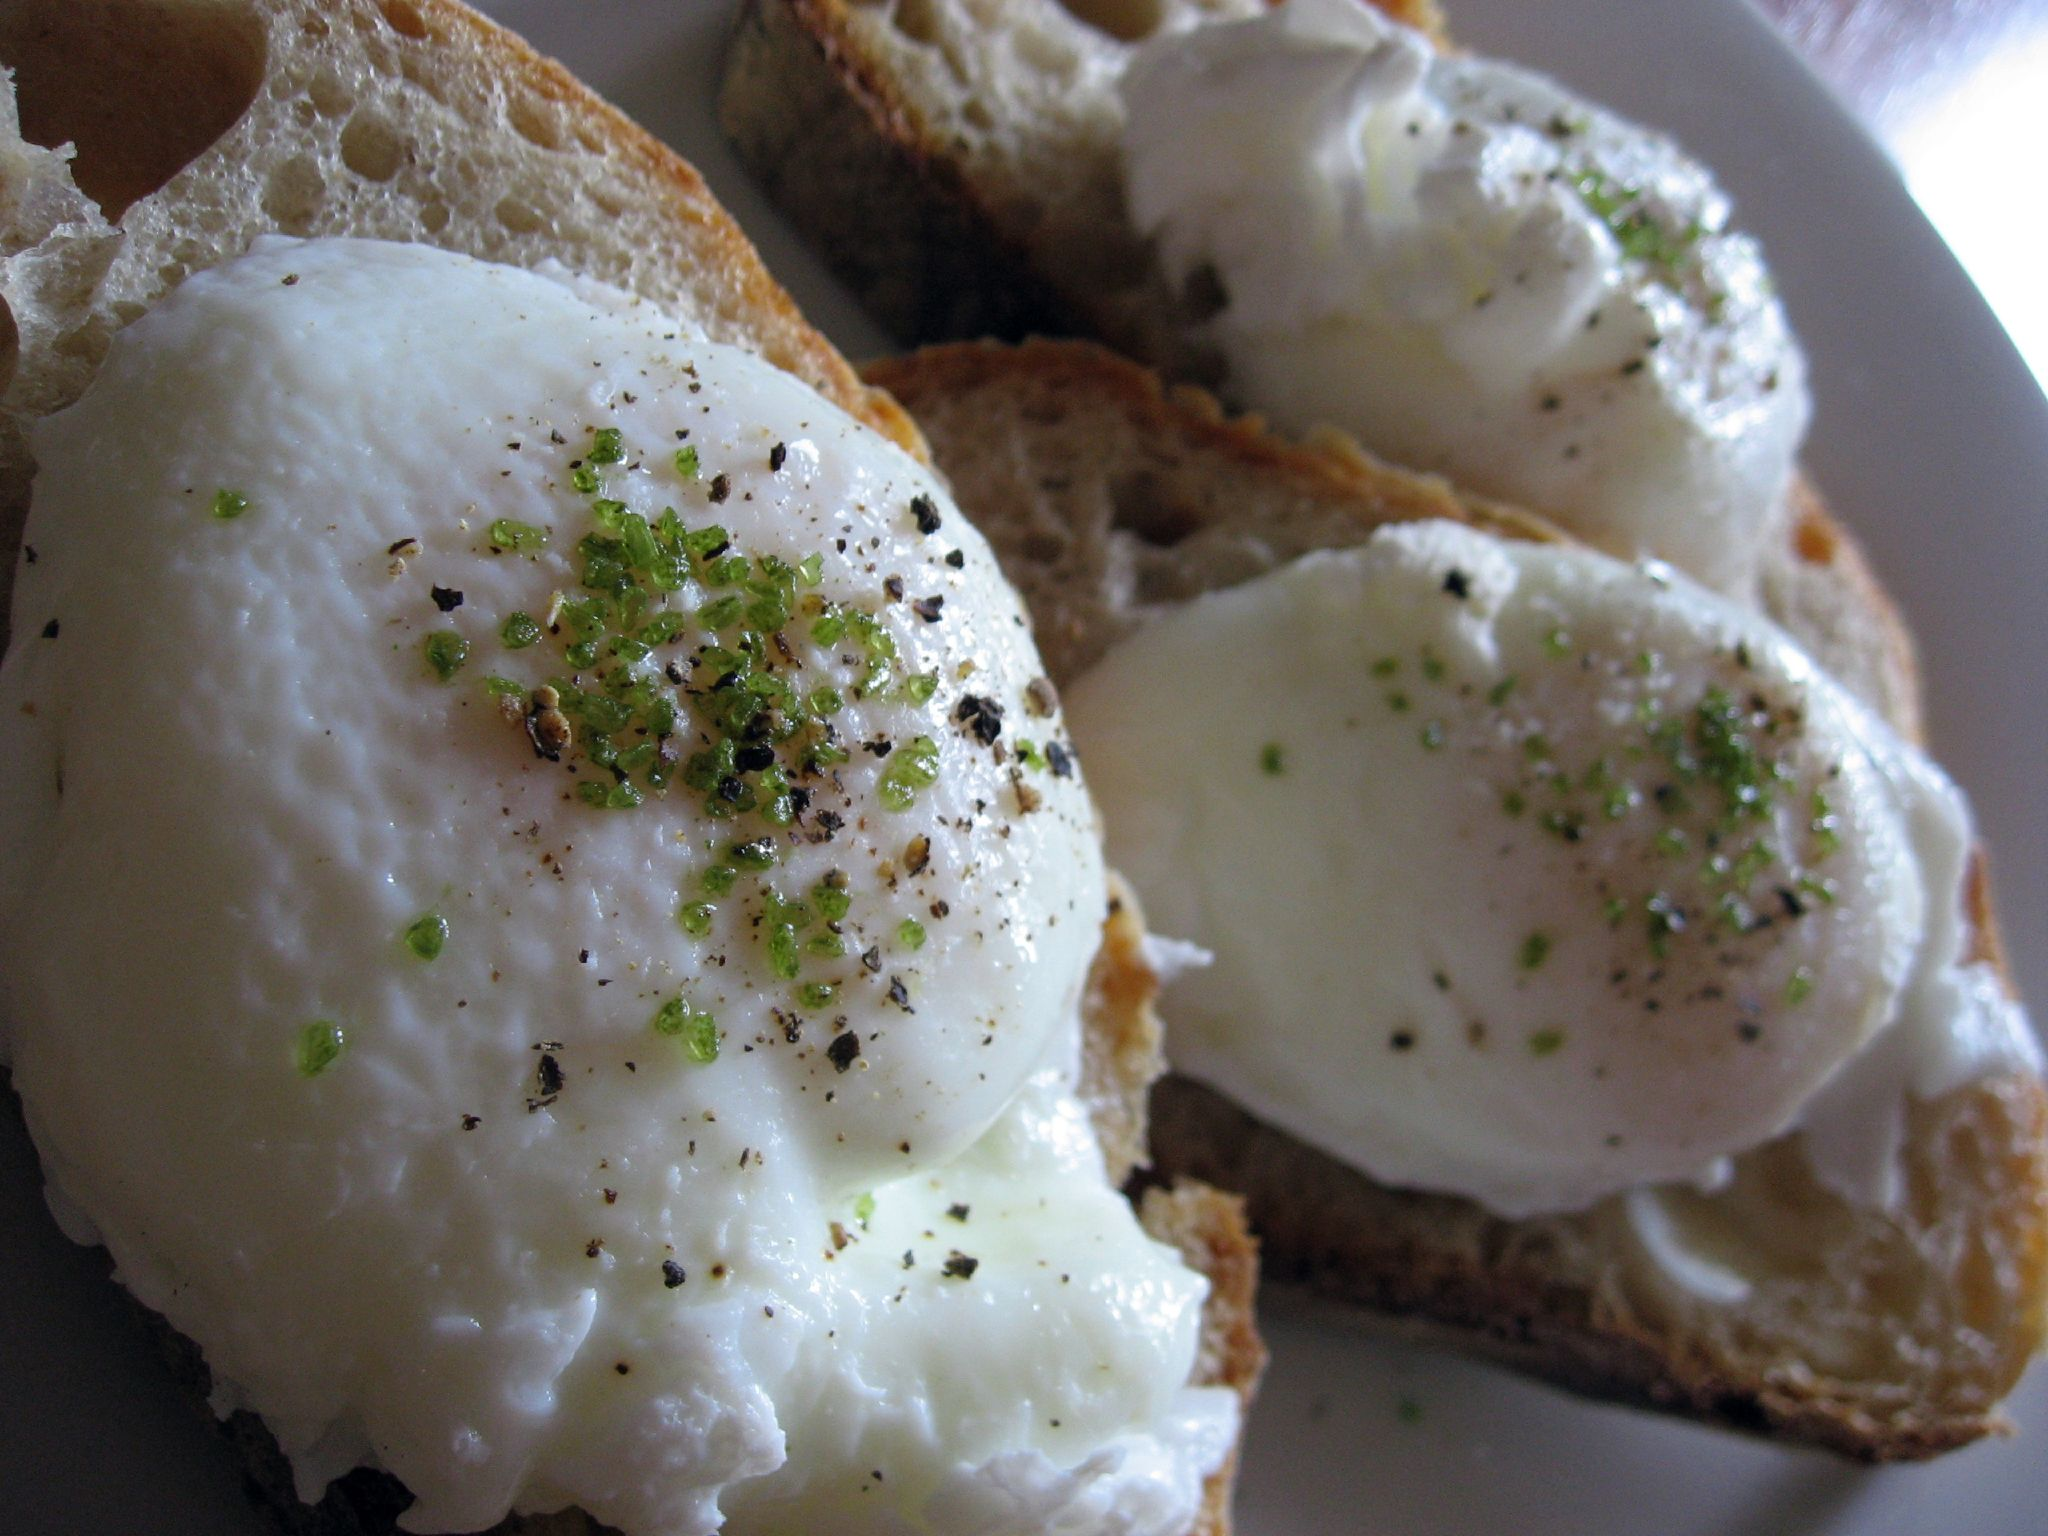 Poached Eggs over bread Wikipedia